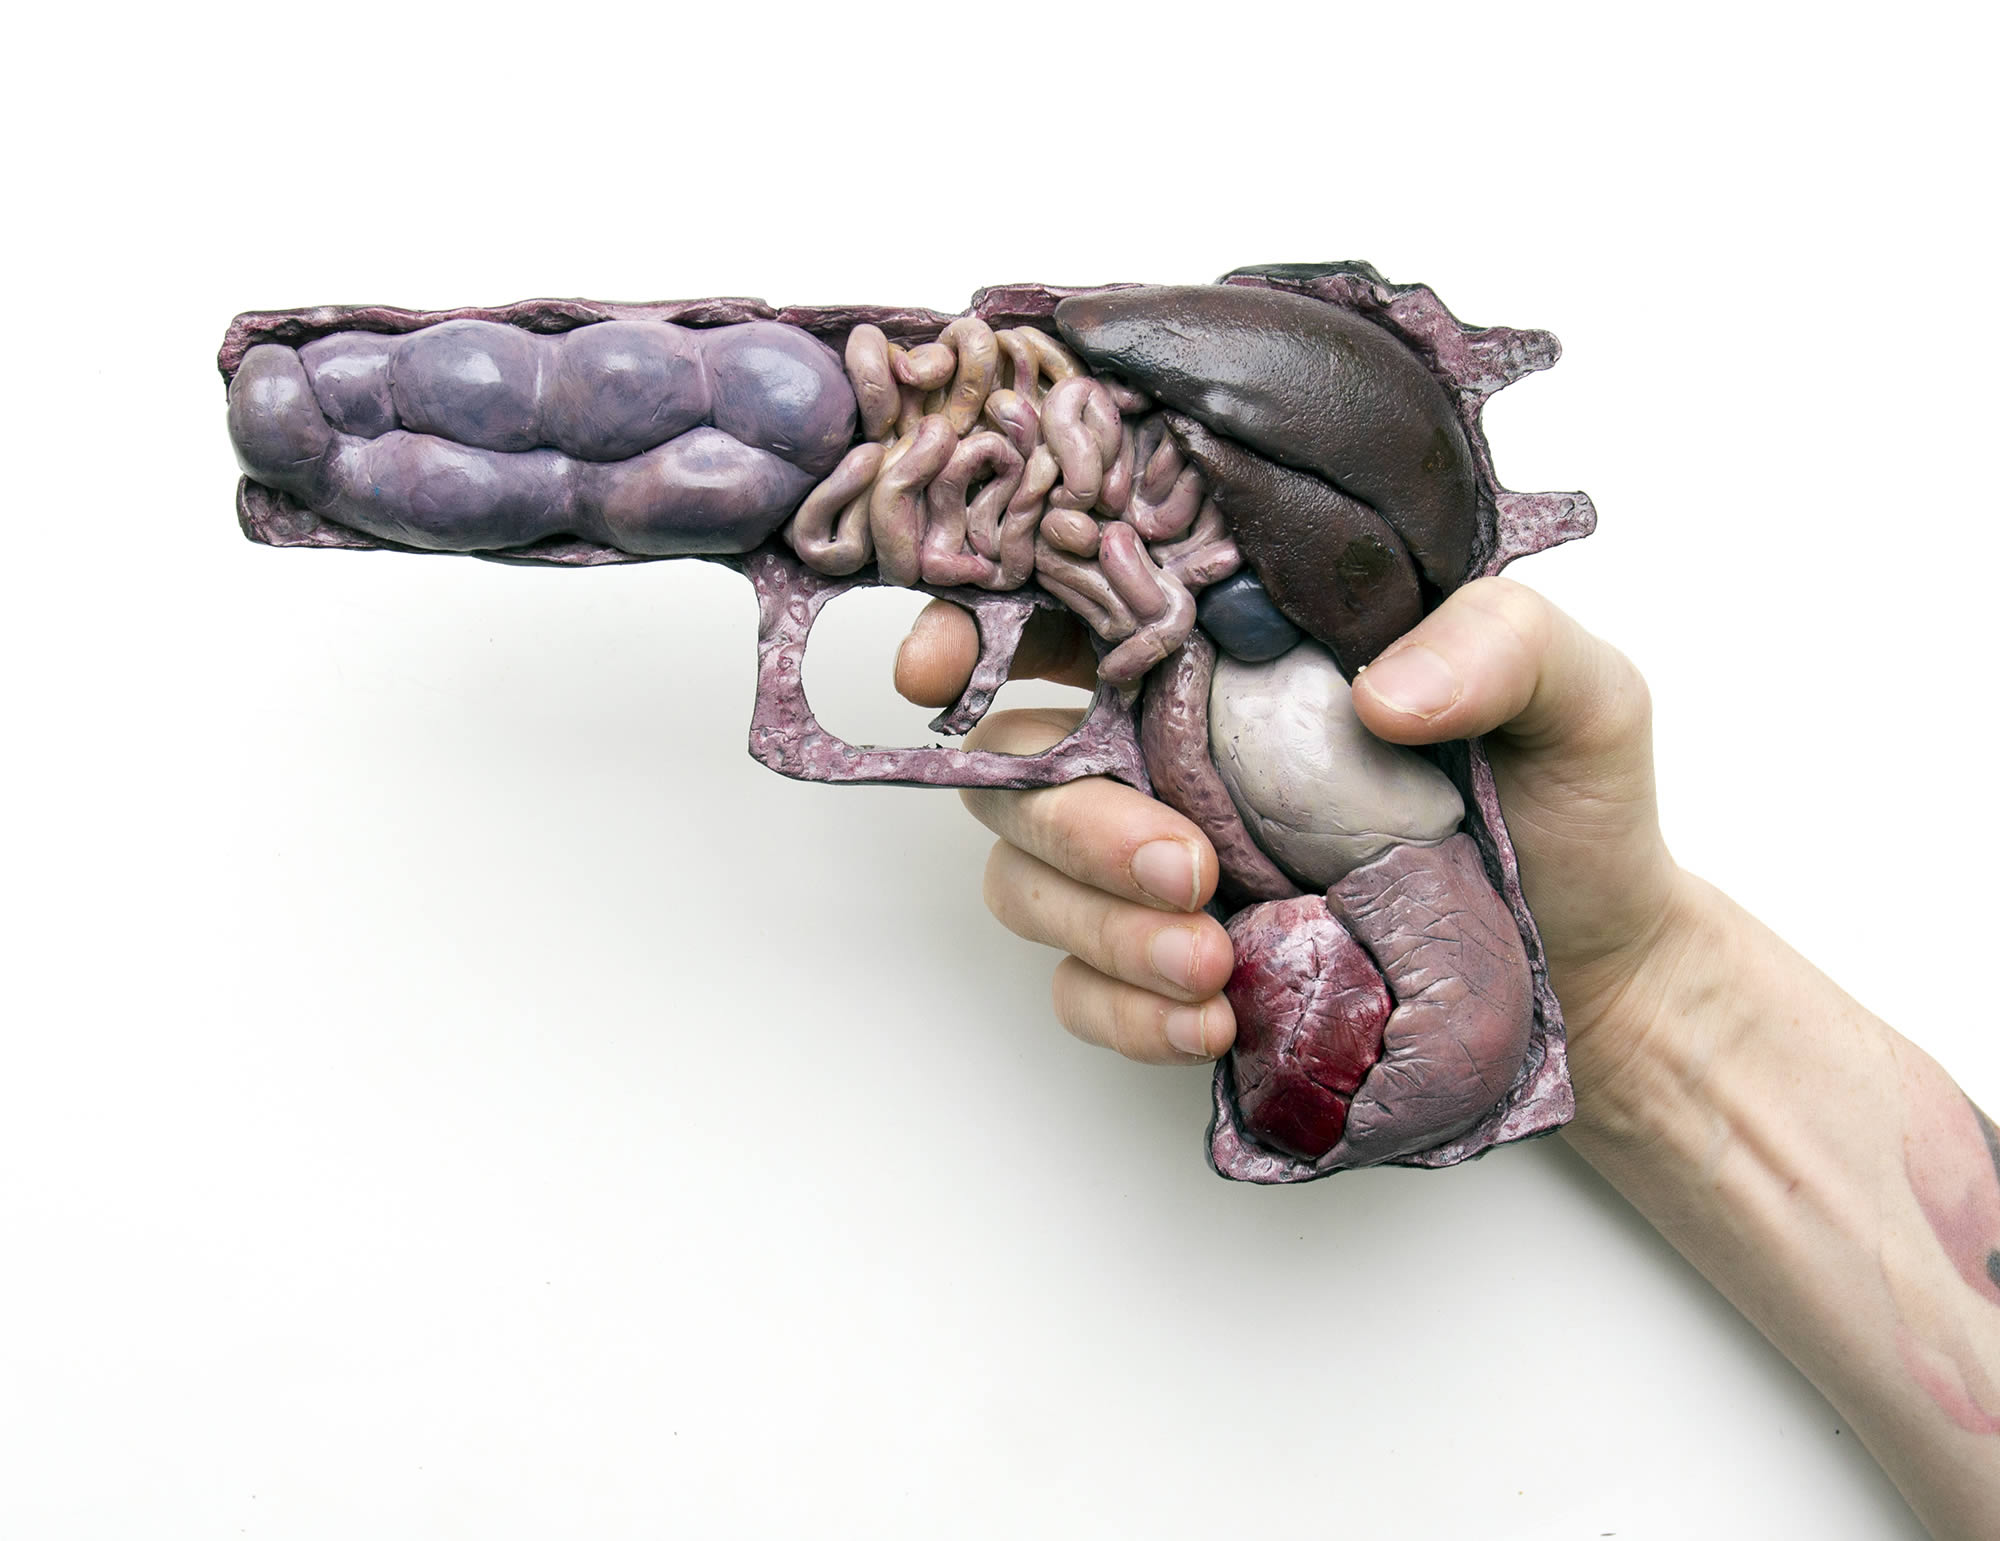 anatomy or war, gun by noah scalin